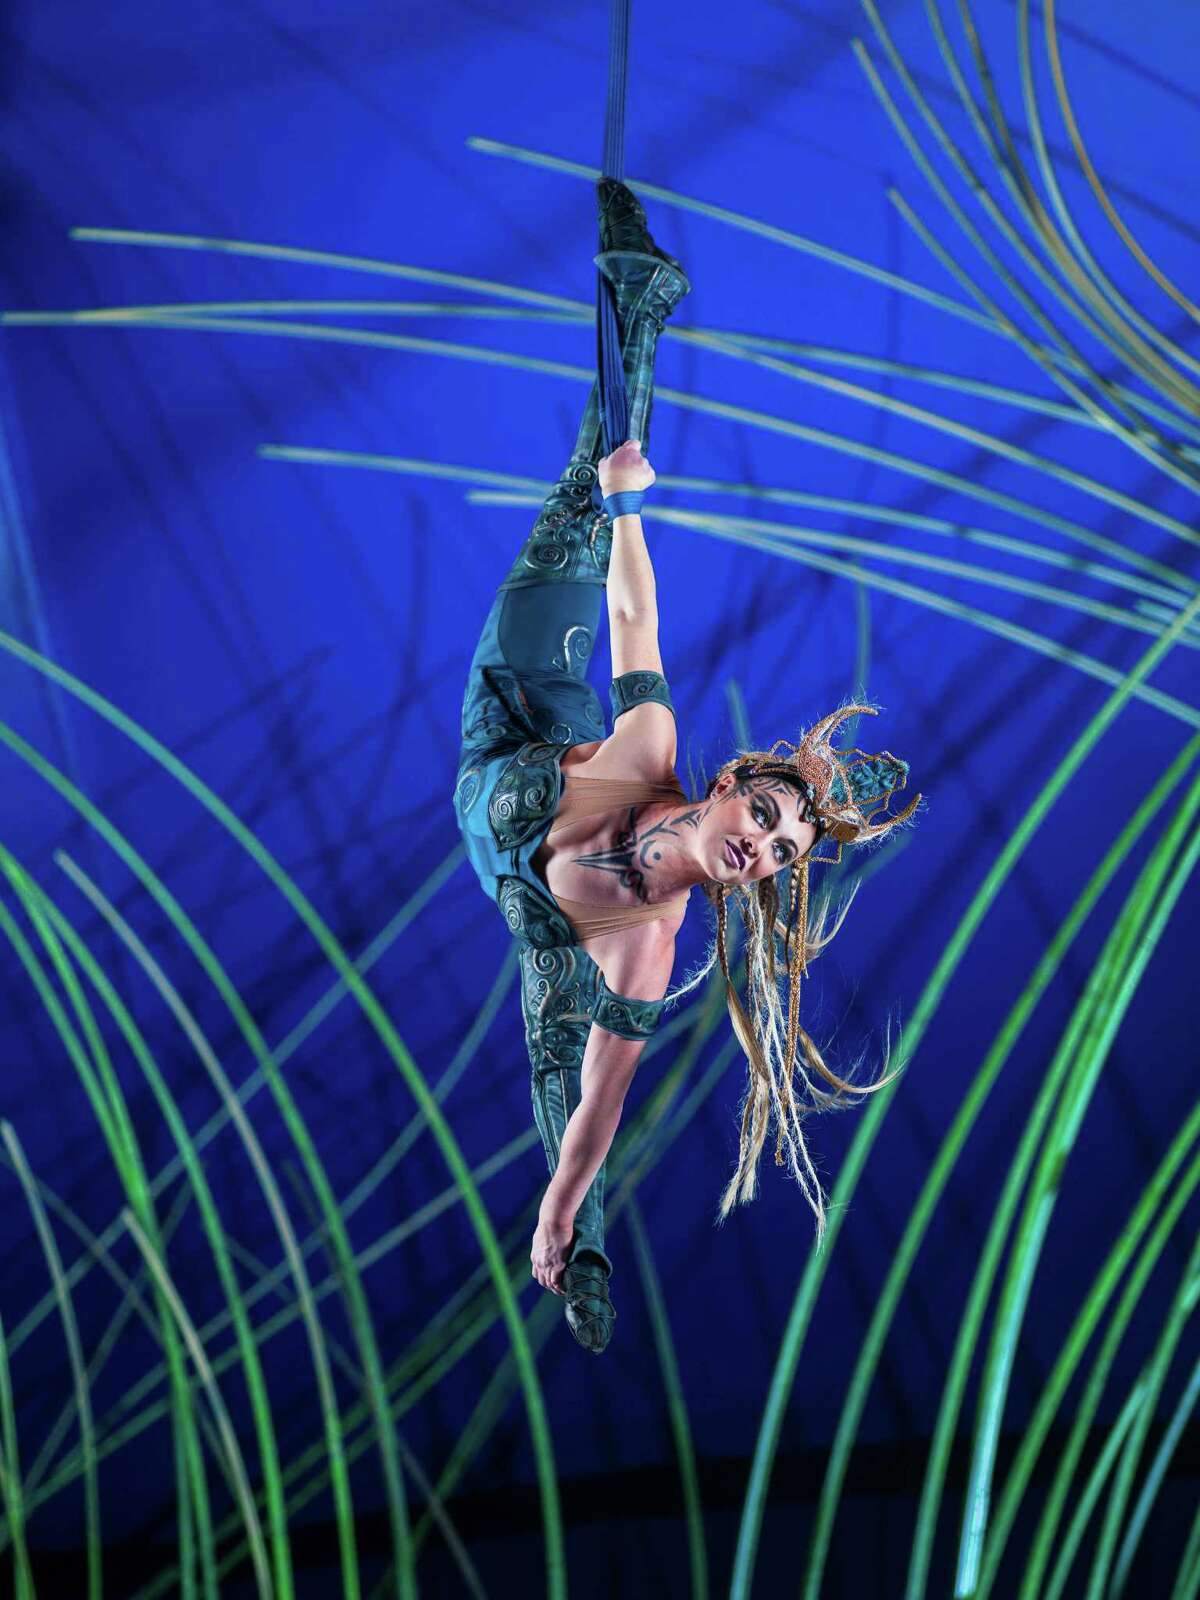 Kylee Maupoux executes an aerial spin during the performance.